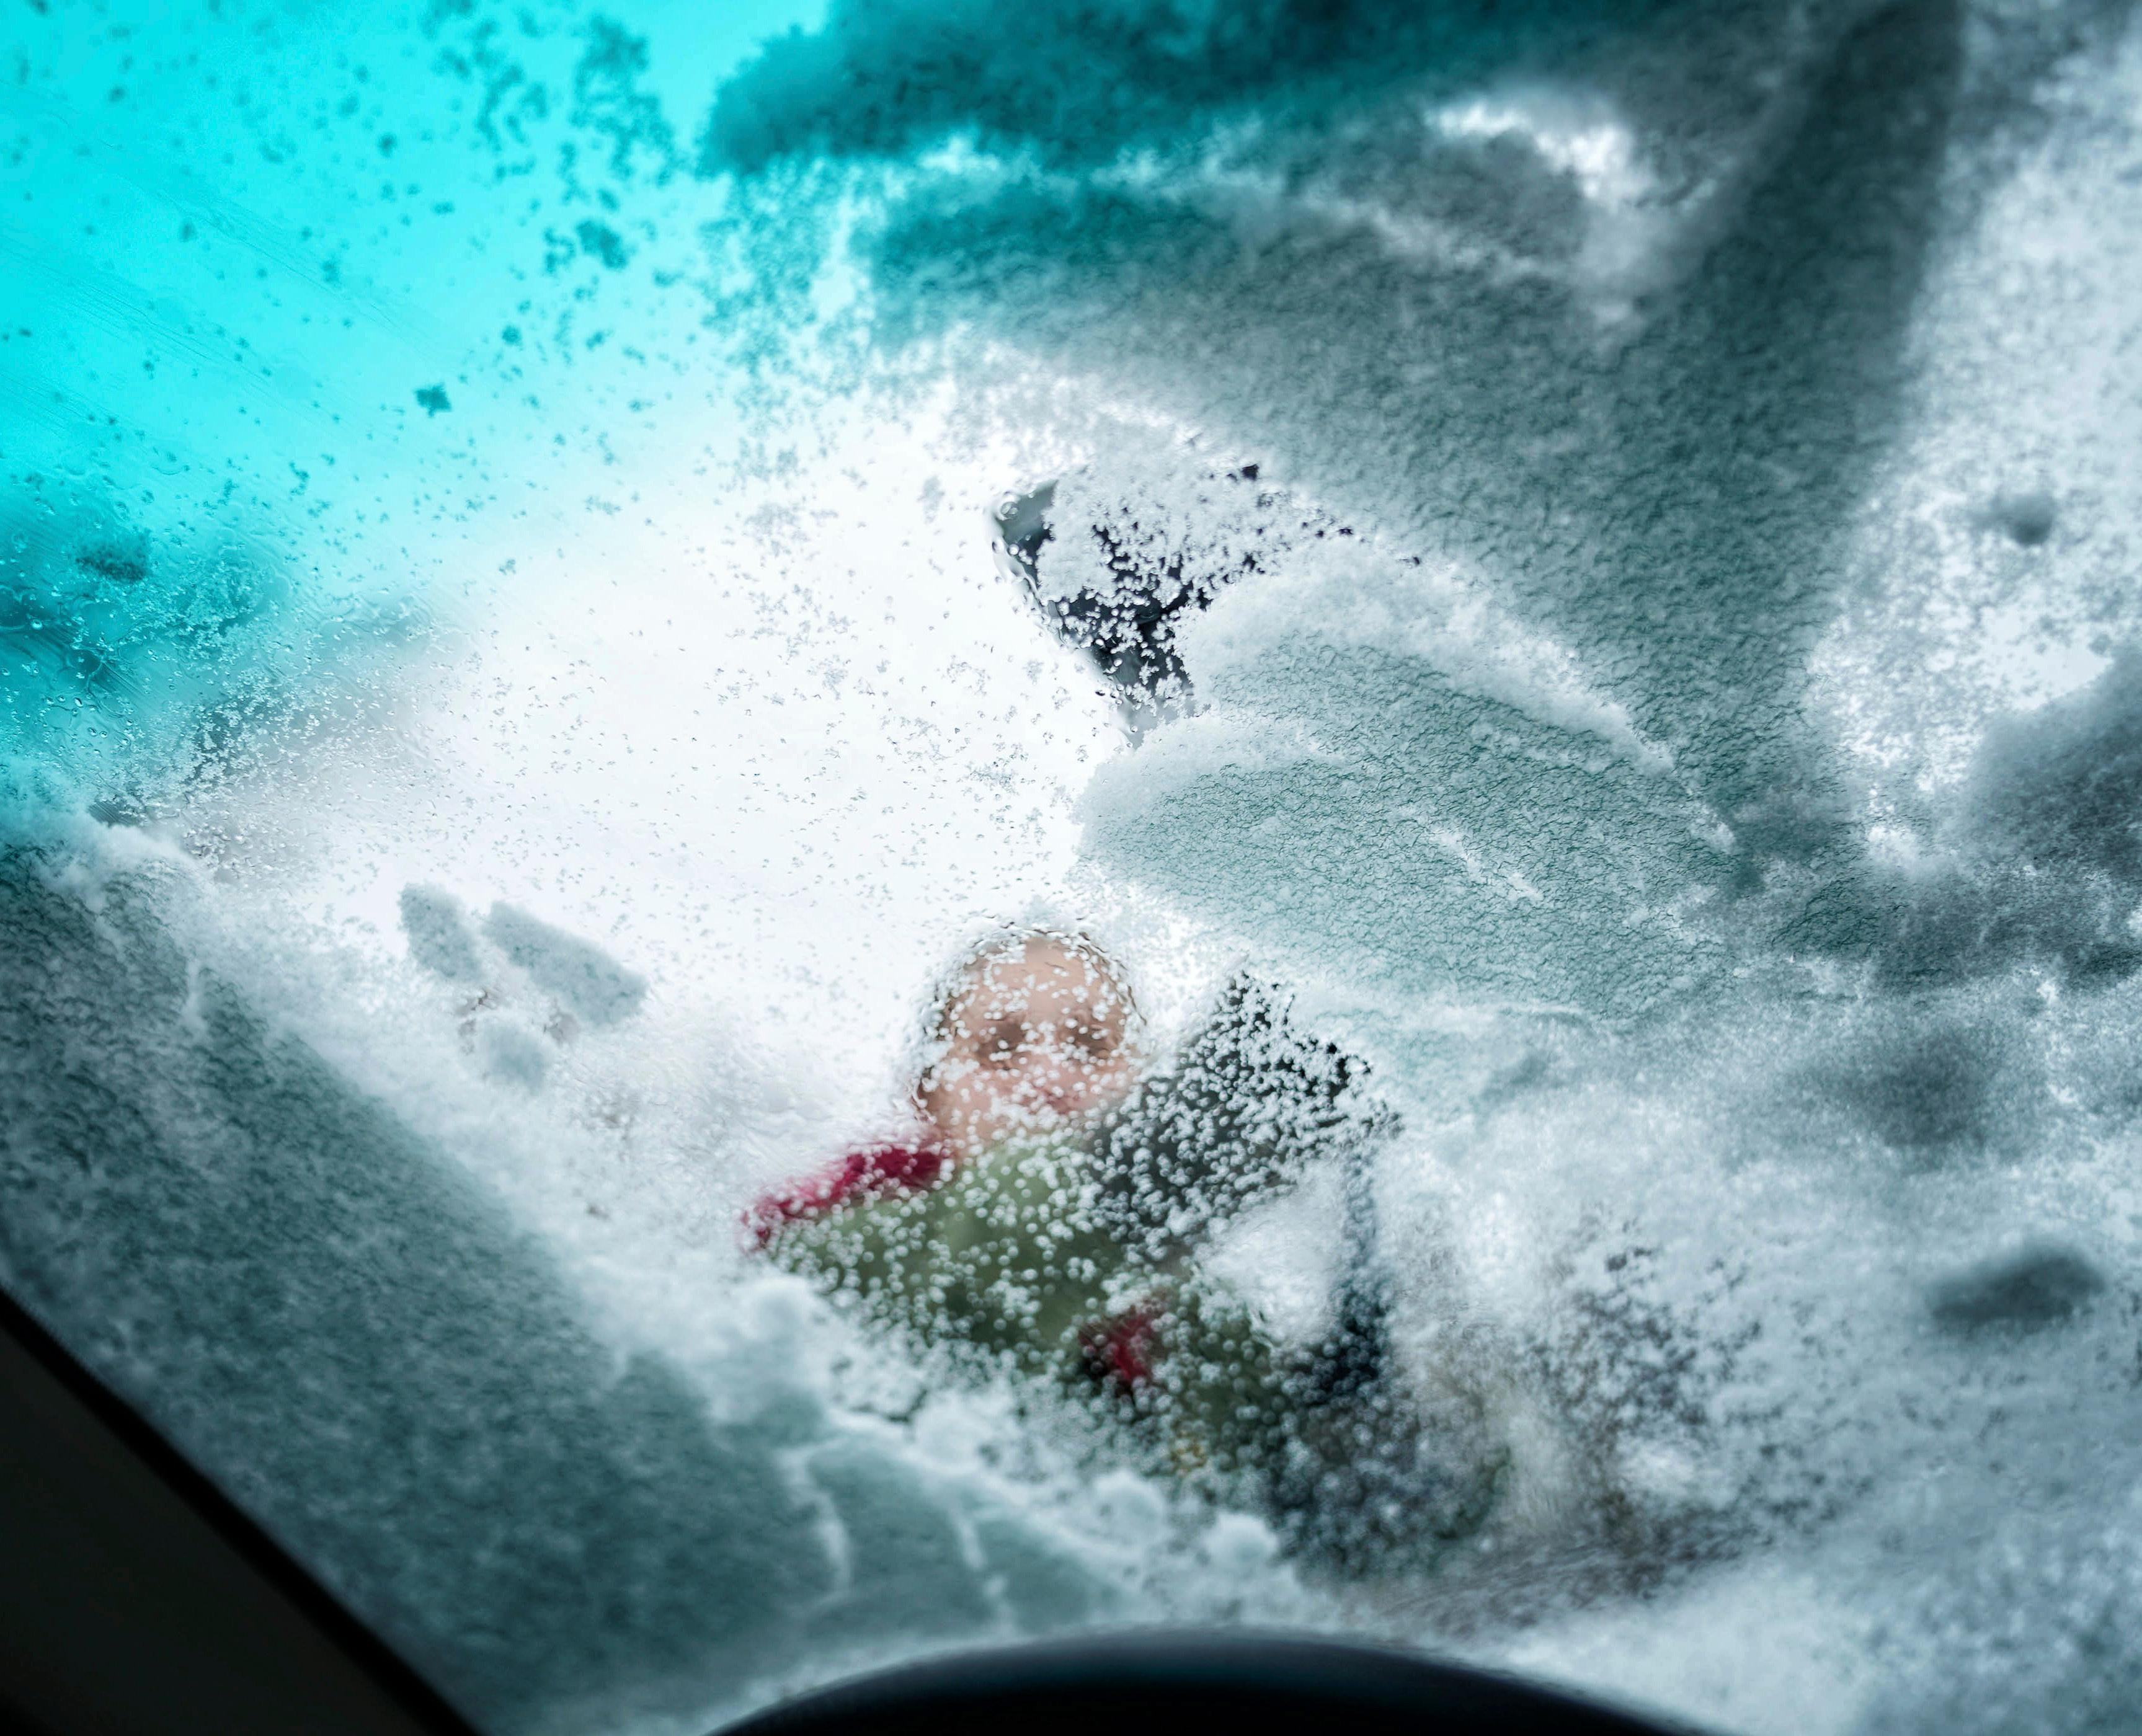 Claire Radtke cleaned the sloppy wet snow from her windshield Tuesday, April 3, 2018,  before heading out to do some errands in St. Paul, Minn. (Glen Stubbe/Star Tribune via AP)